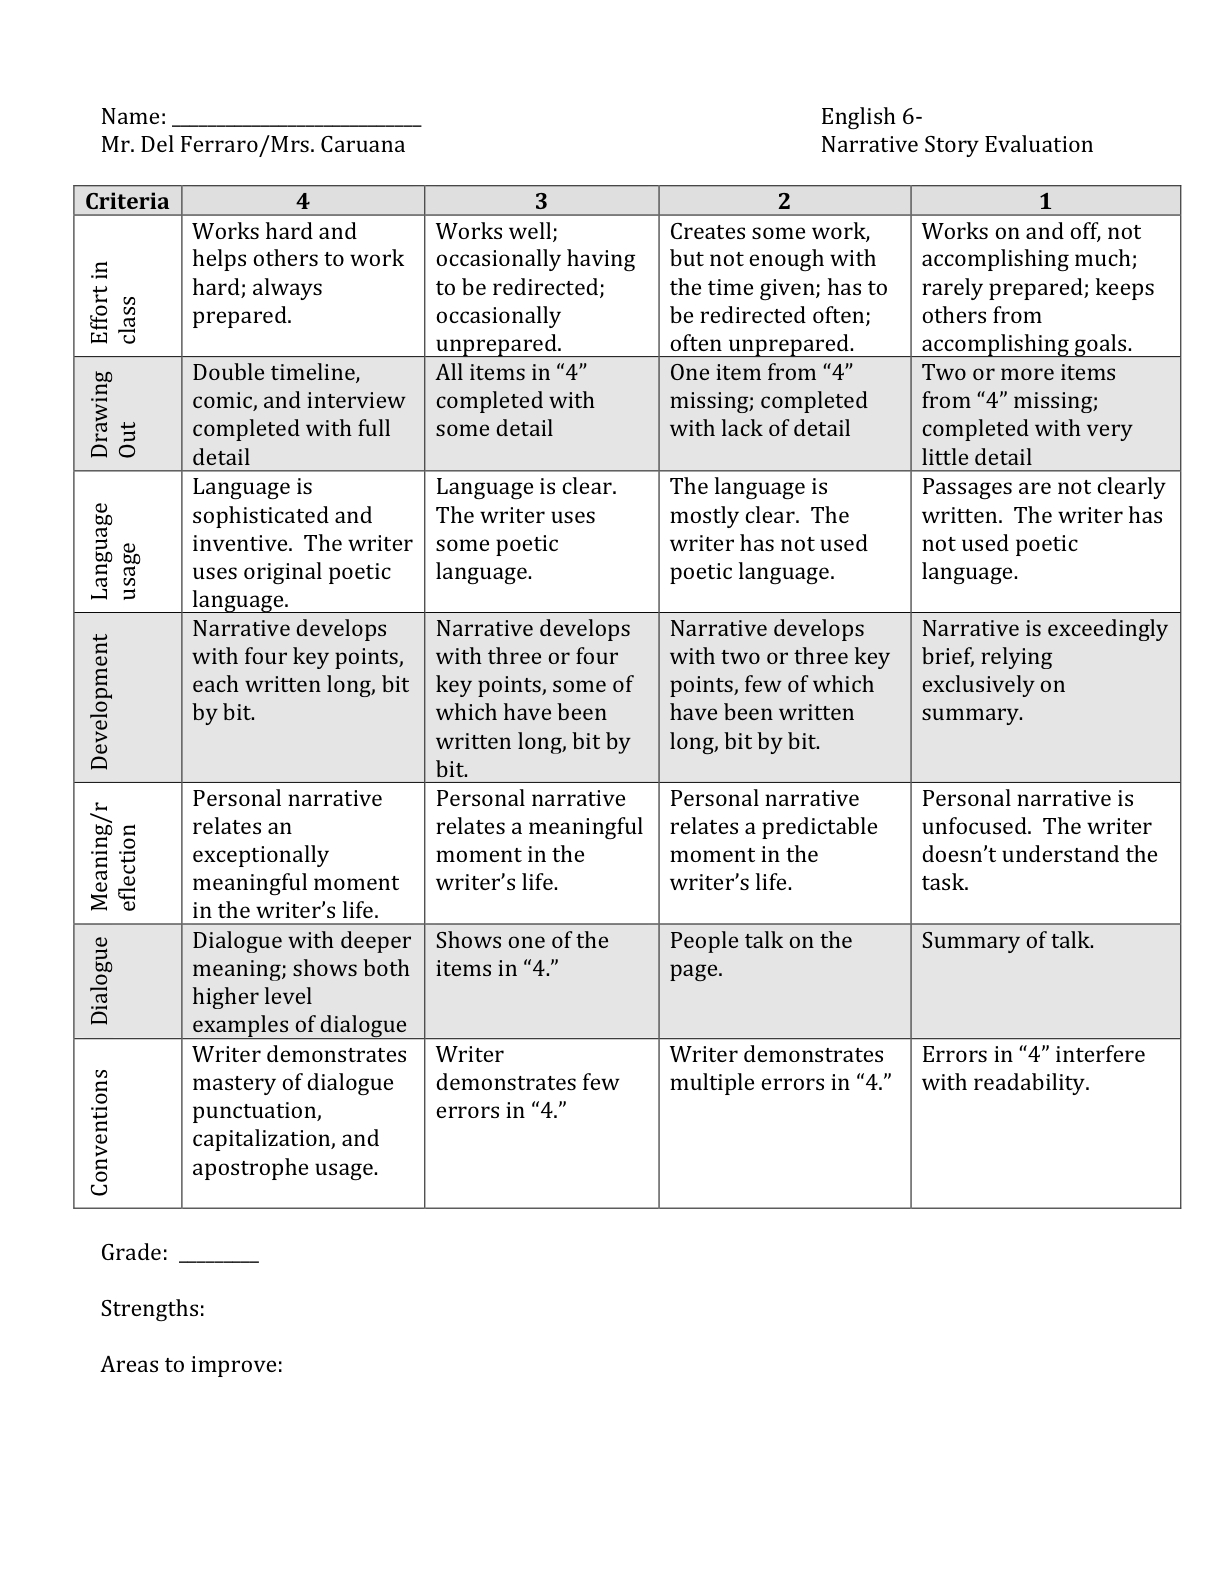 017 English Research Paper Rubric Marvelous 101 Full